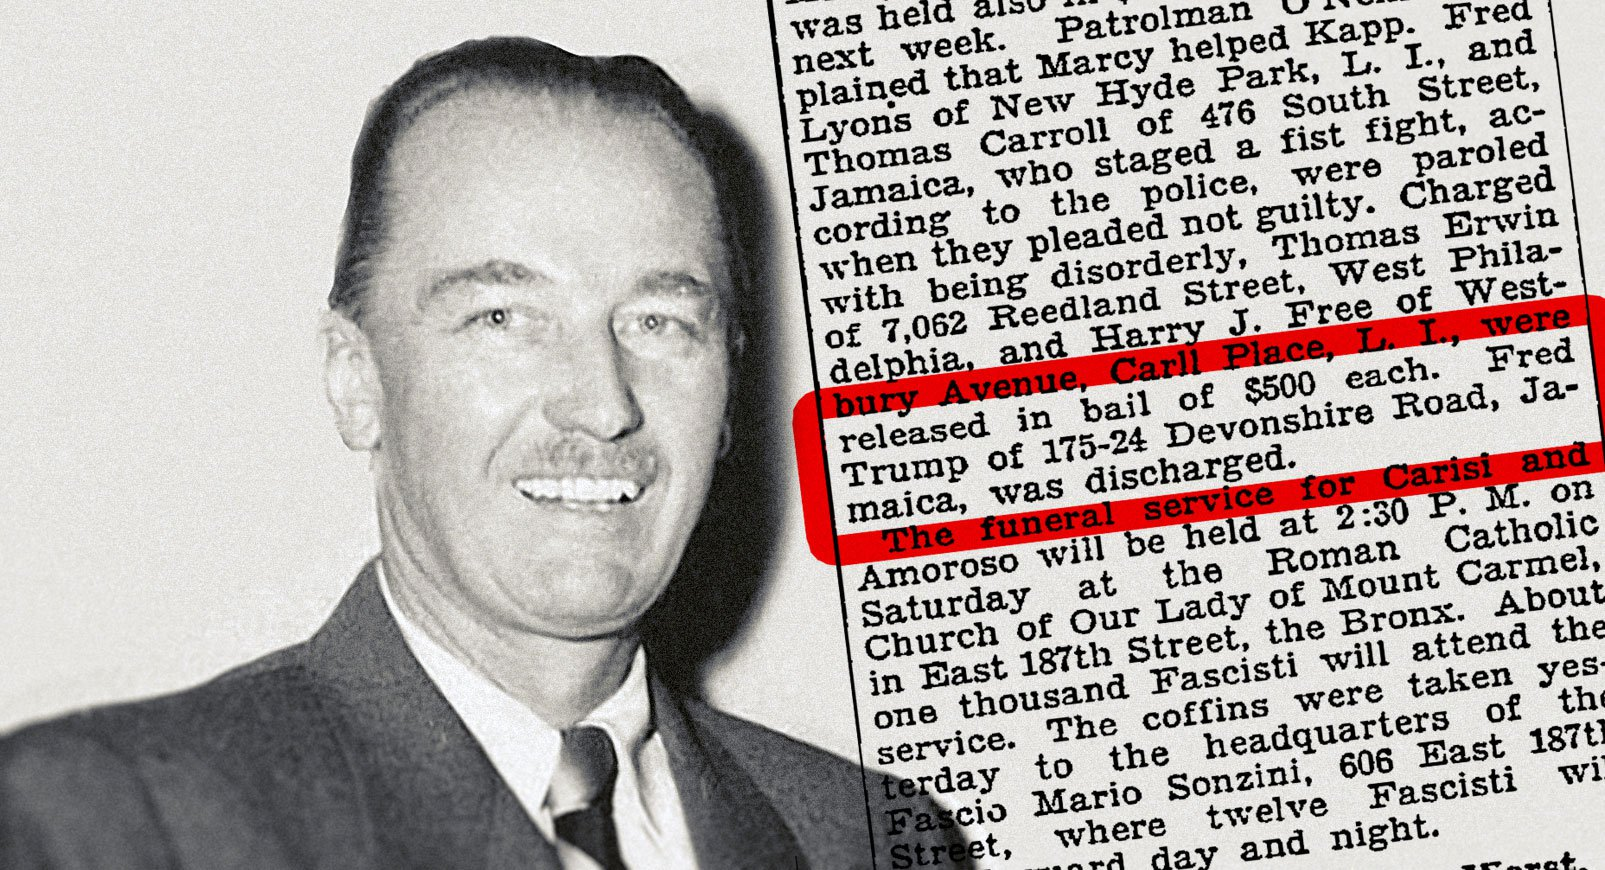 Donald Trump's Father May Have Had KKK Associations